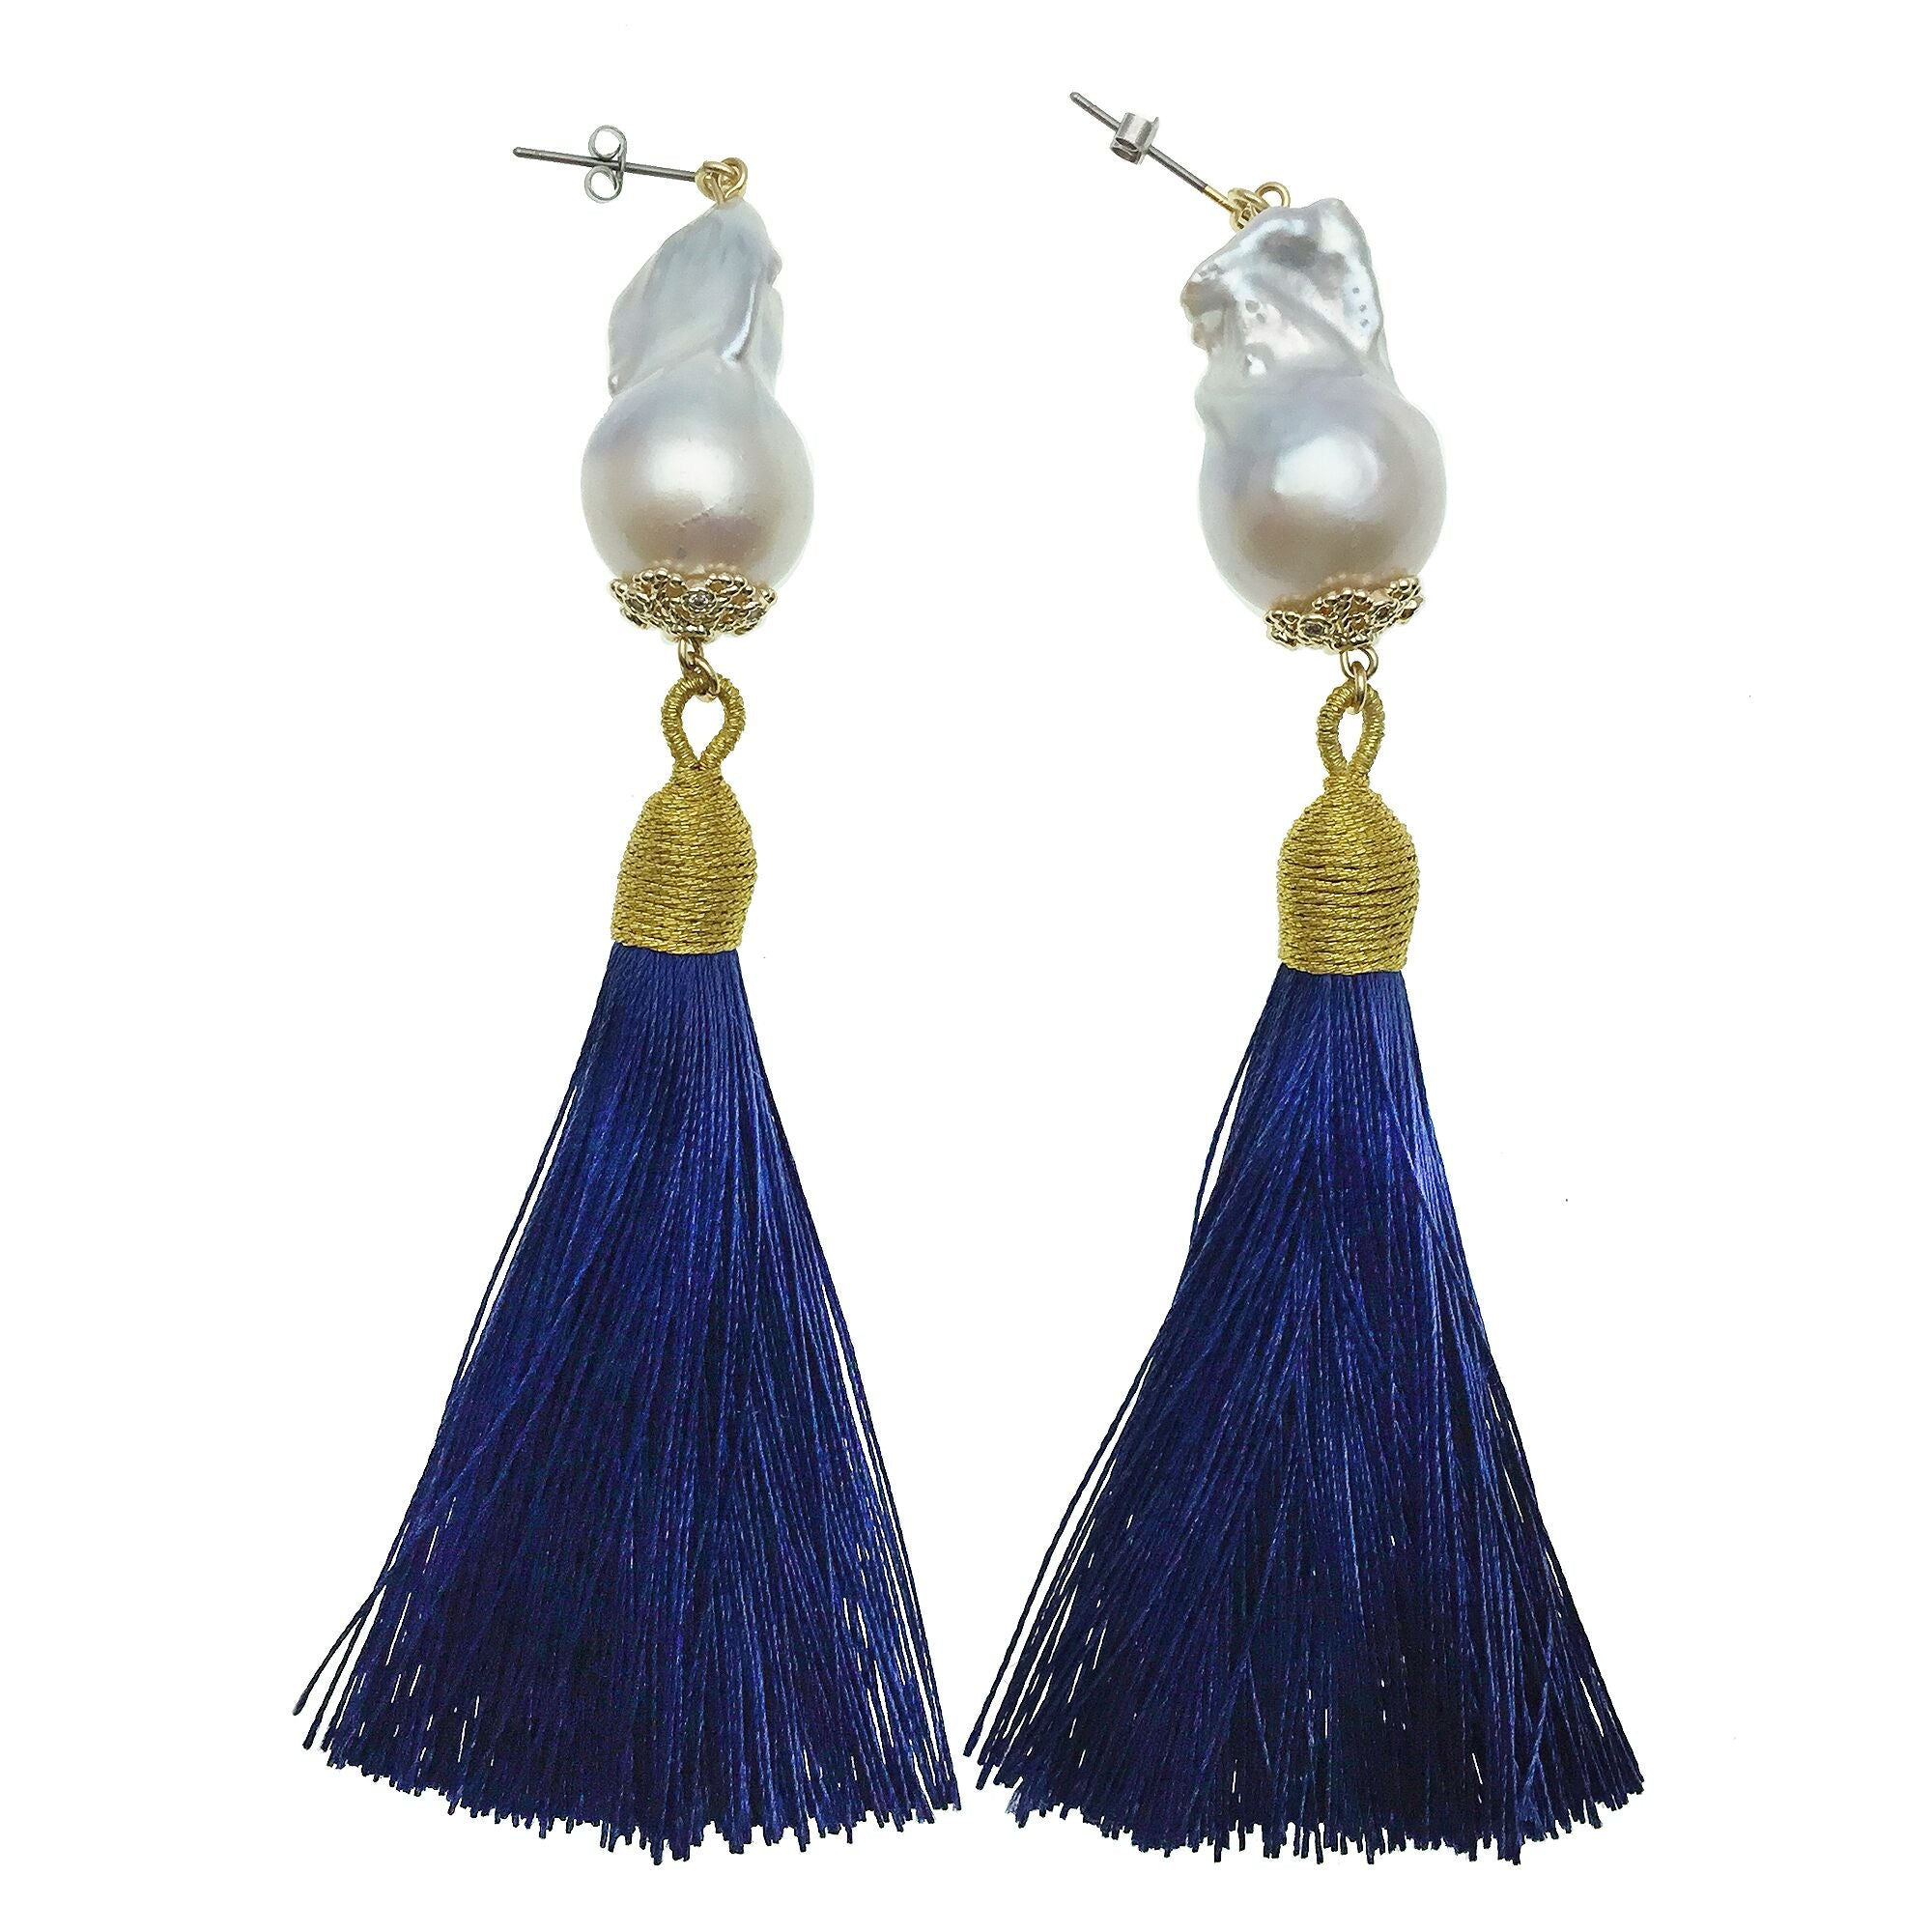 Baroque Pearl and Blue Tassel Earrings - Shopidpearl